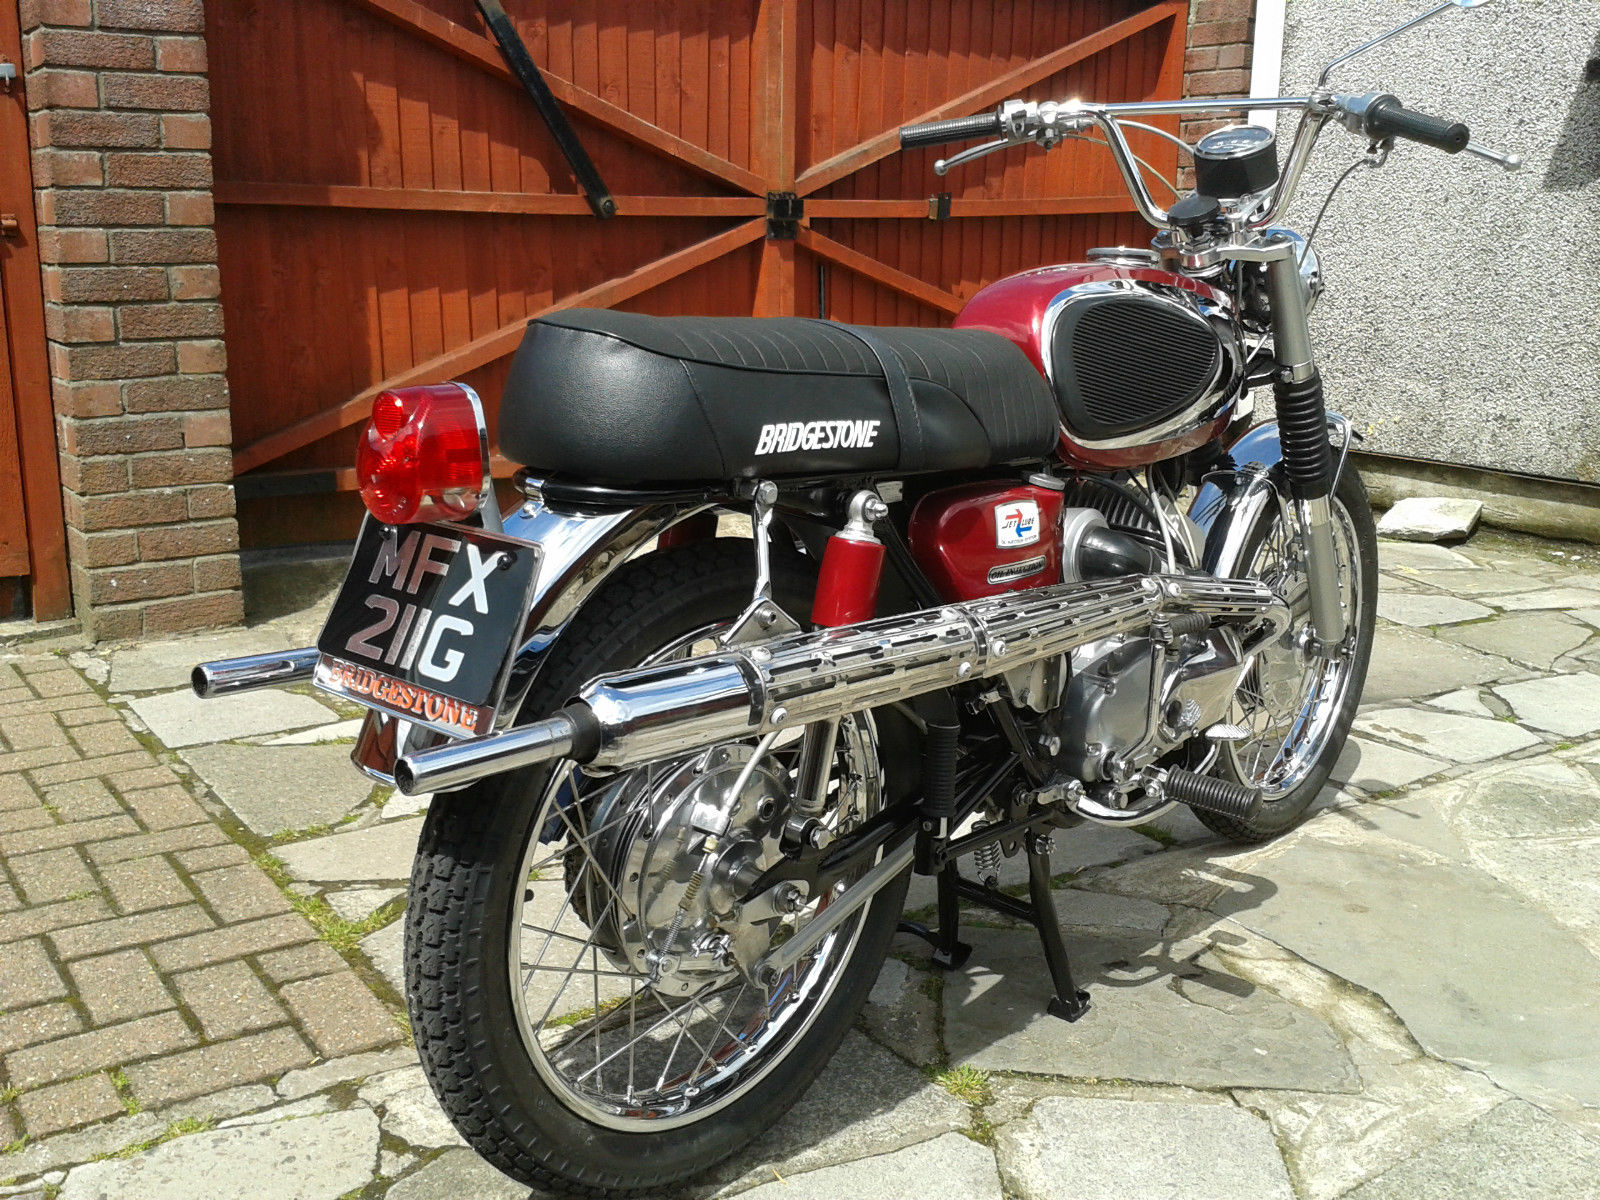 Bridgestone Mach11 -1969 - Rear Fender, Number plate, Rear Light and Upswept Exhaust.